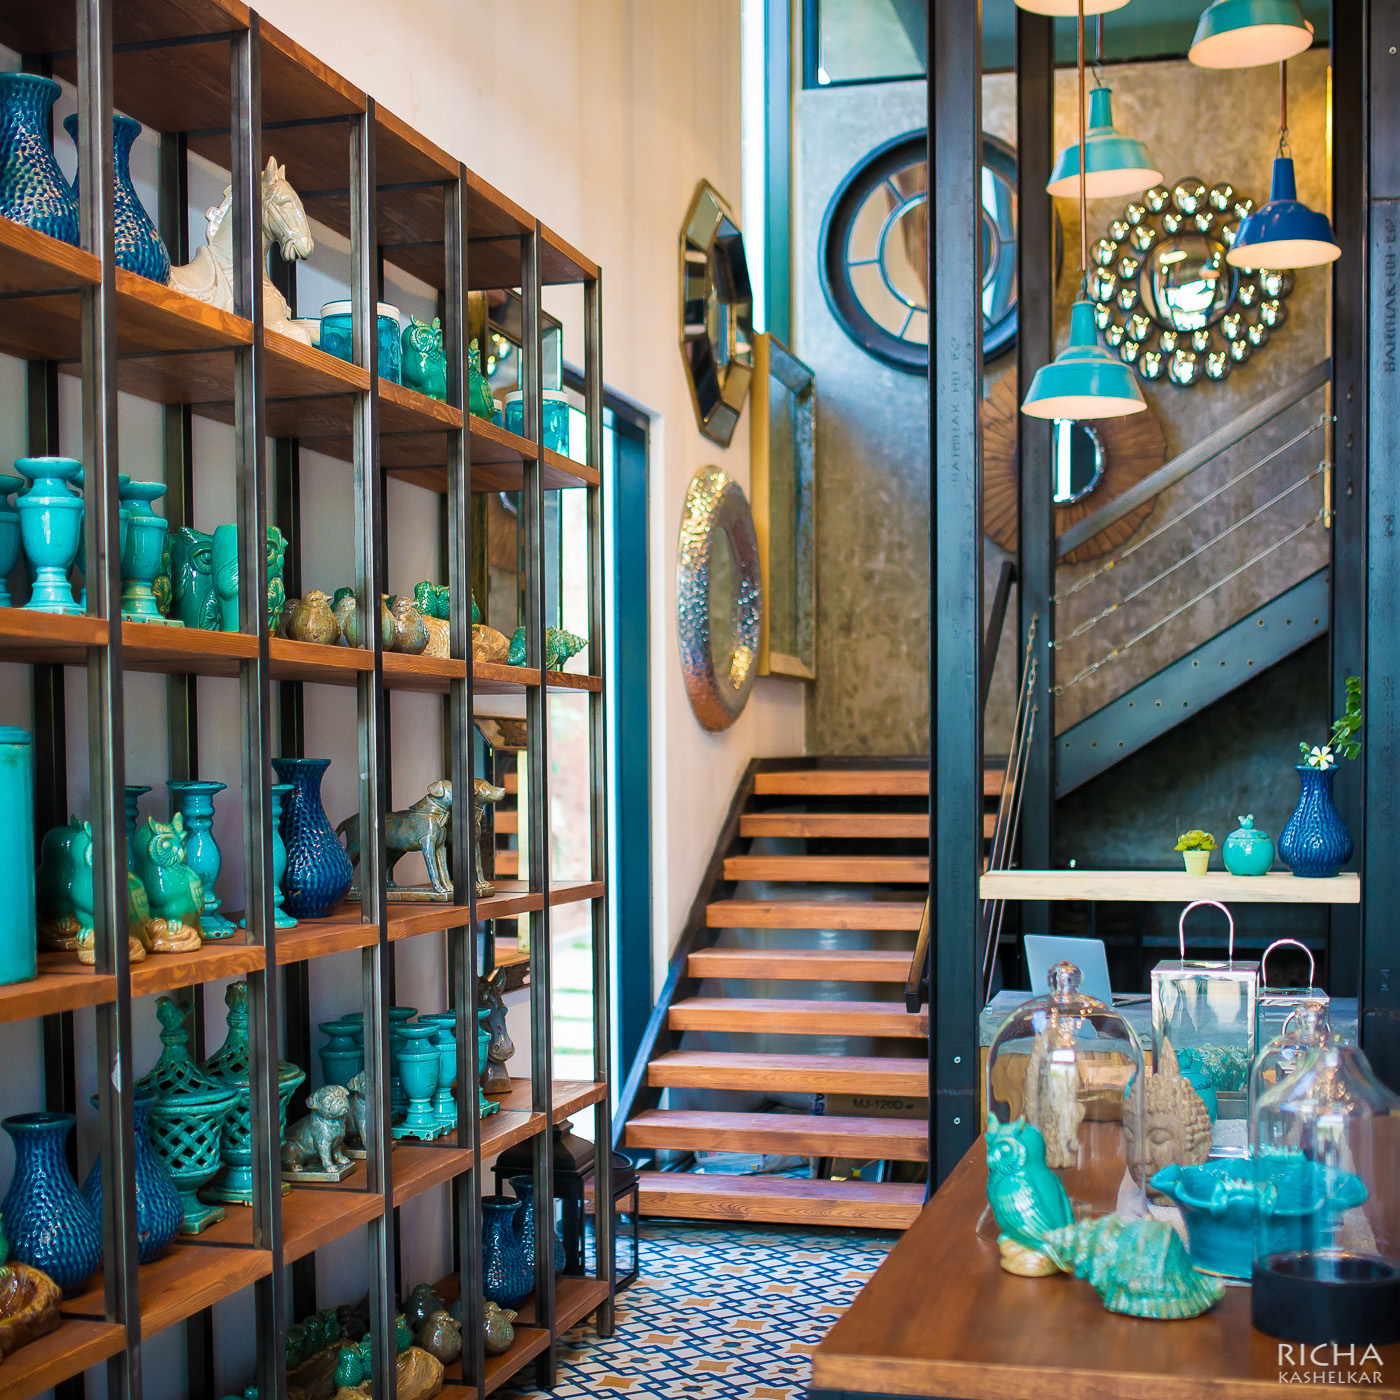 Shopping Home Decor: Room Therapy-first Look Of Sona Reddy's Flagship Store